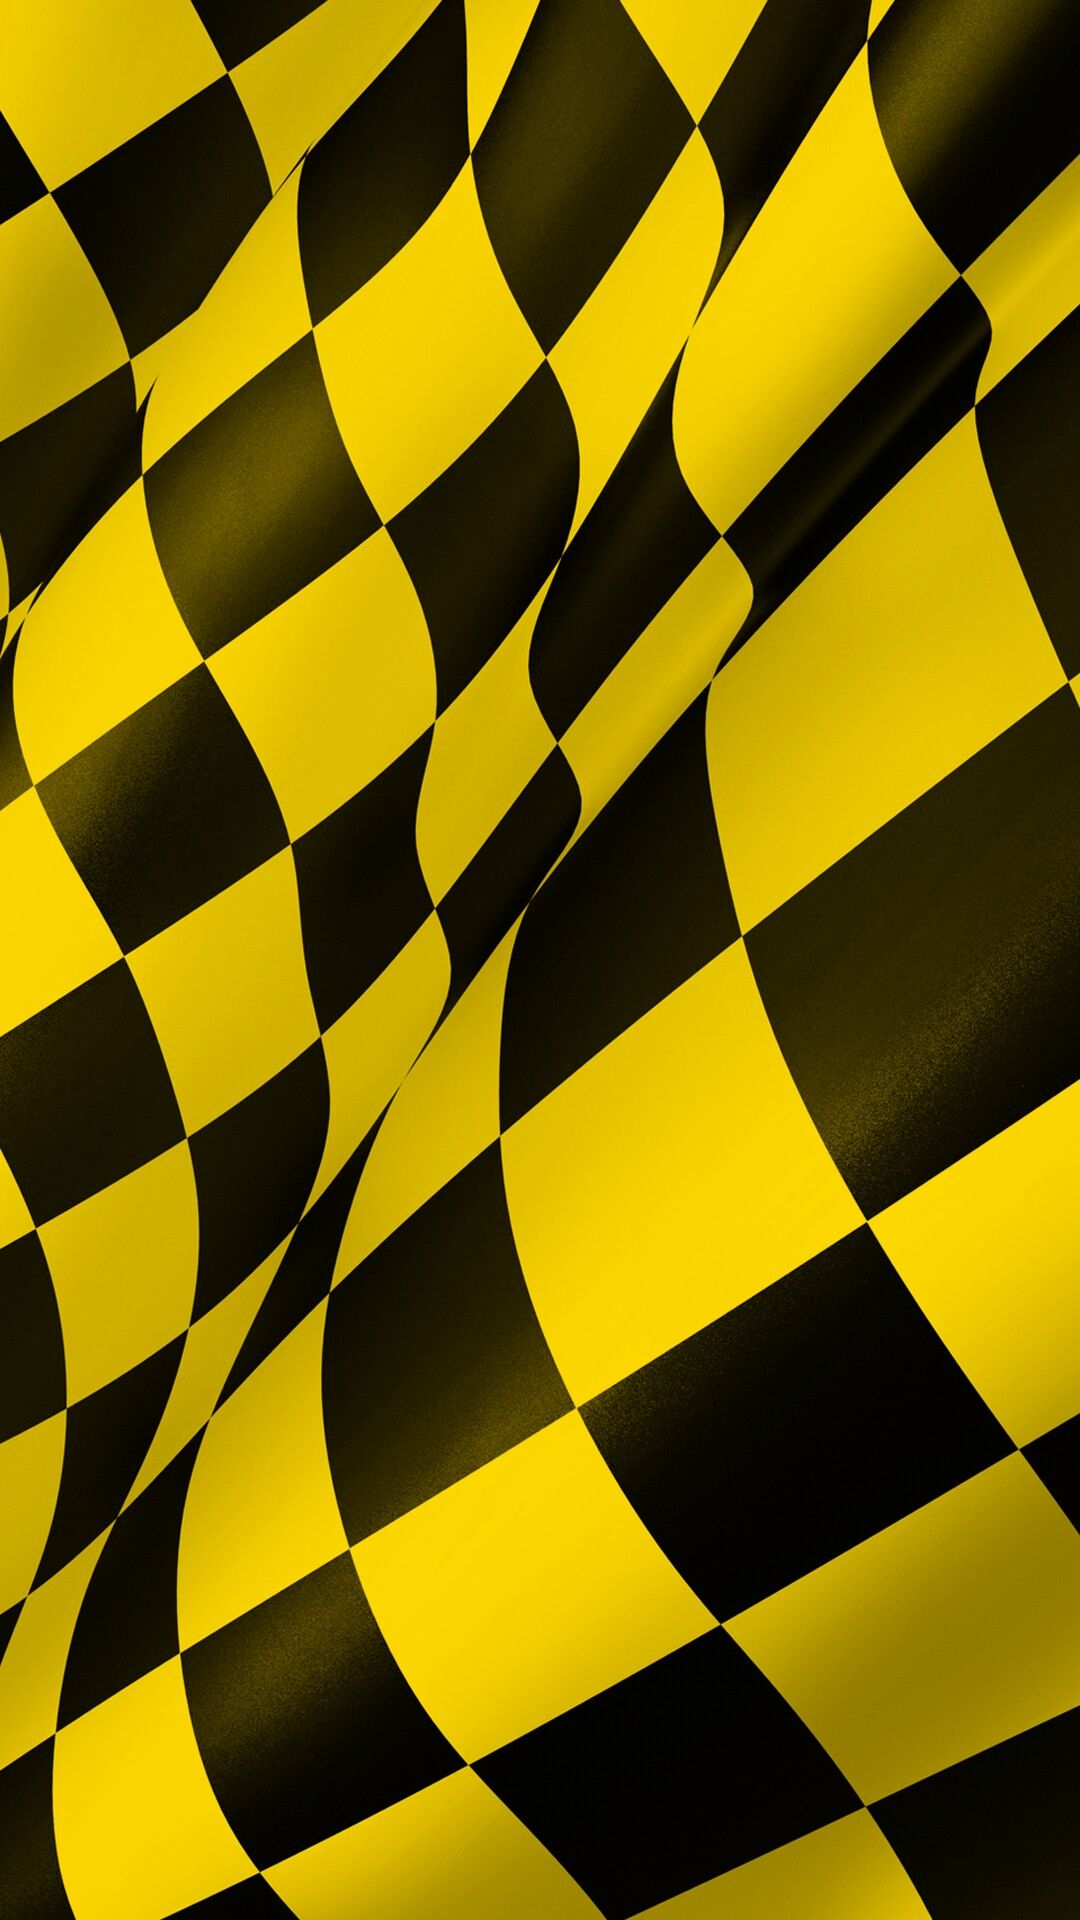 Yellow checkered flag Iphone wallpaper yellow, Hd cool